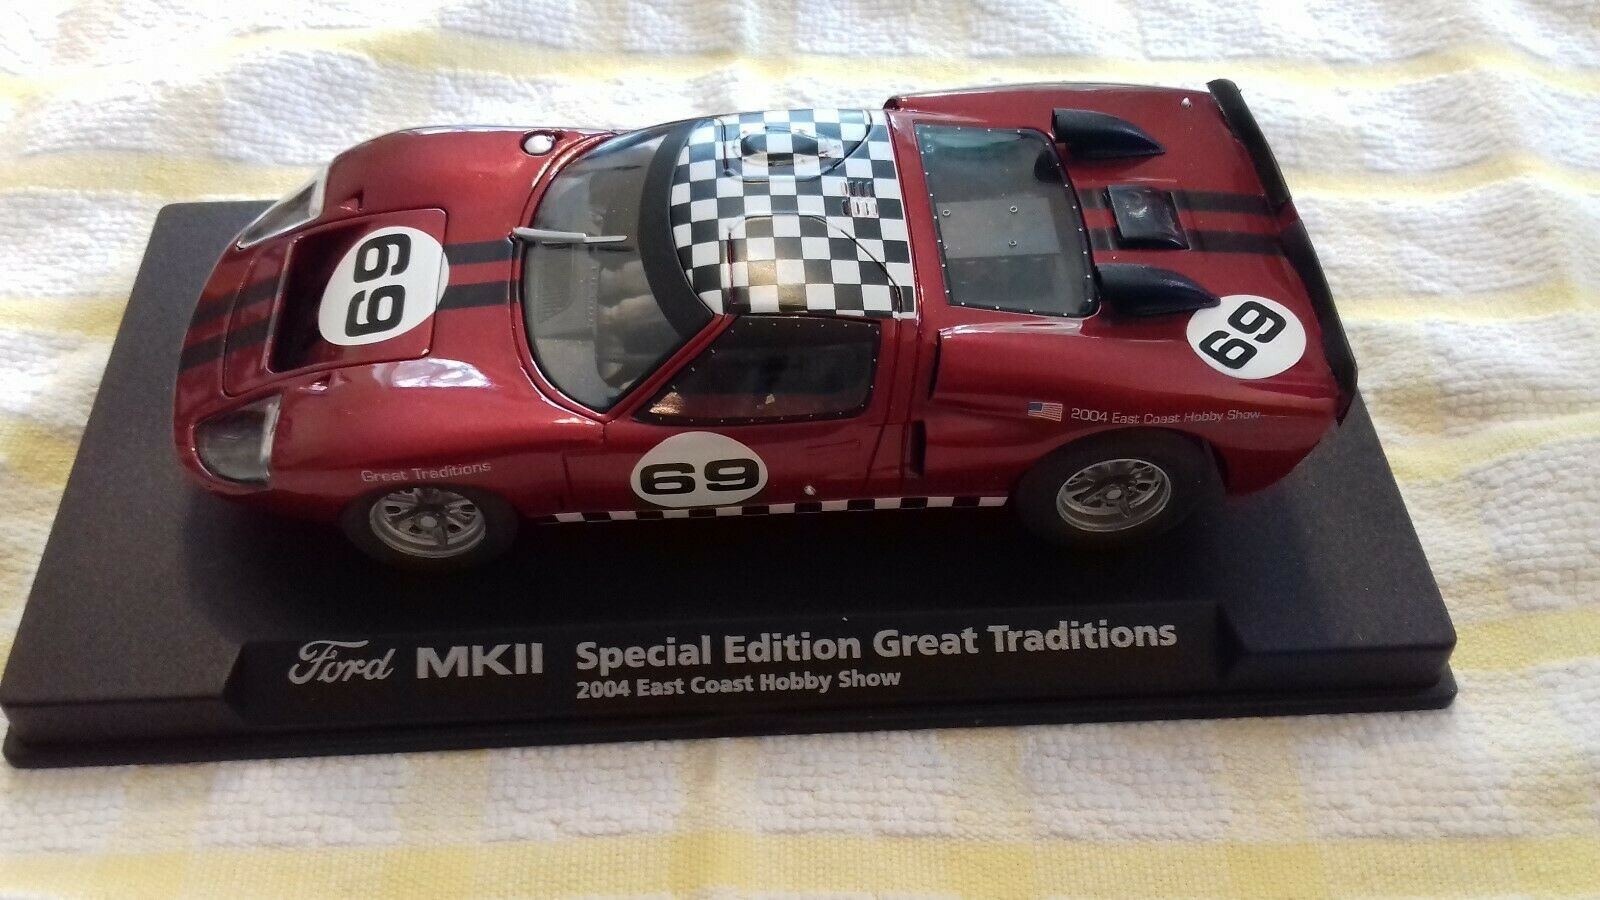 Fly 96044 Ford Mk11Special Edition Great Traditions